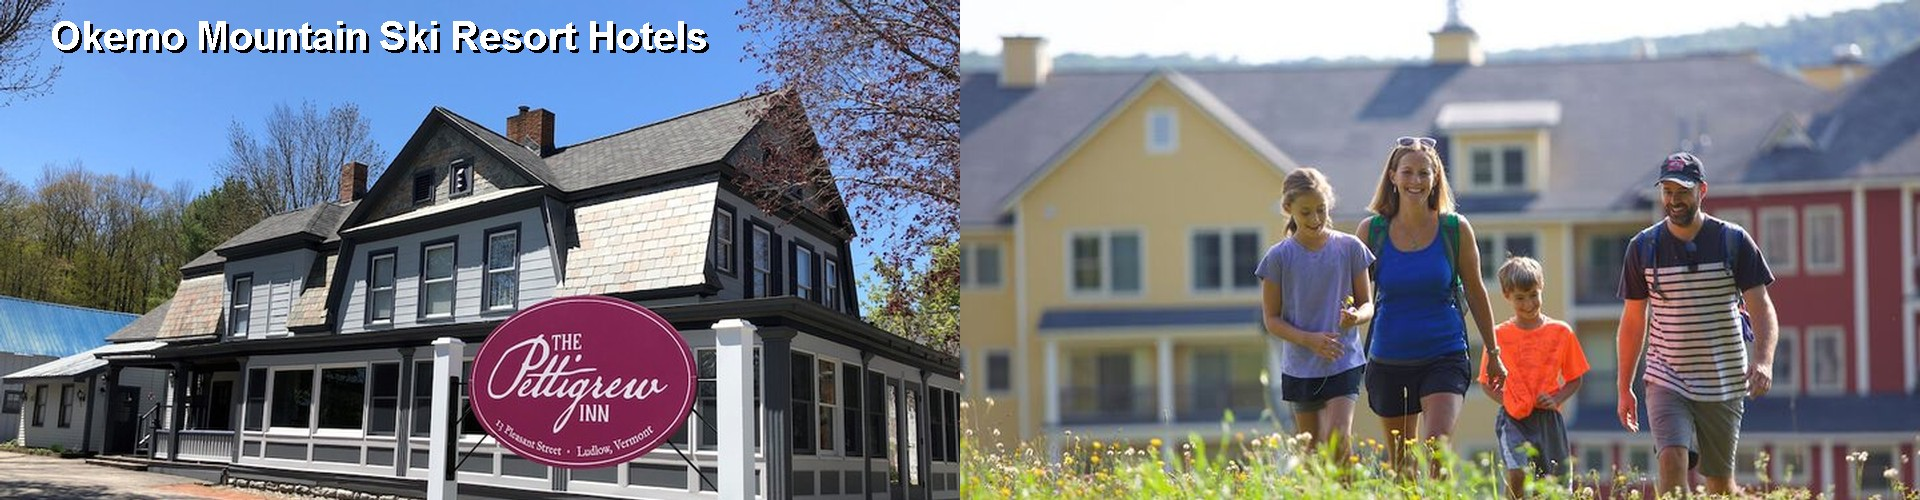 55 Hotels Near Okemo Mountain Ski Resort In Ludlow Vt